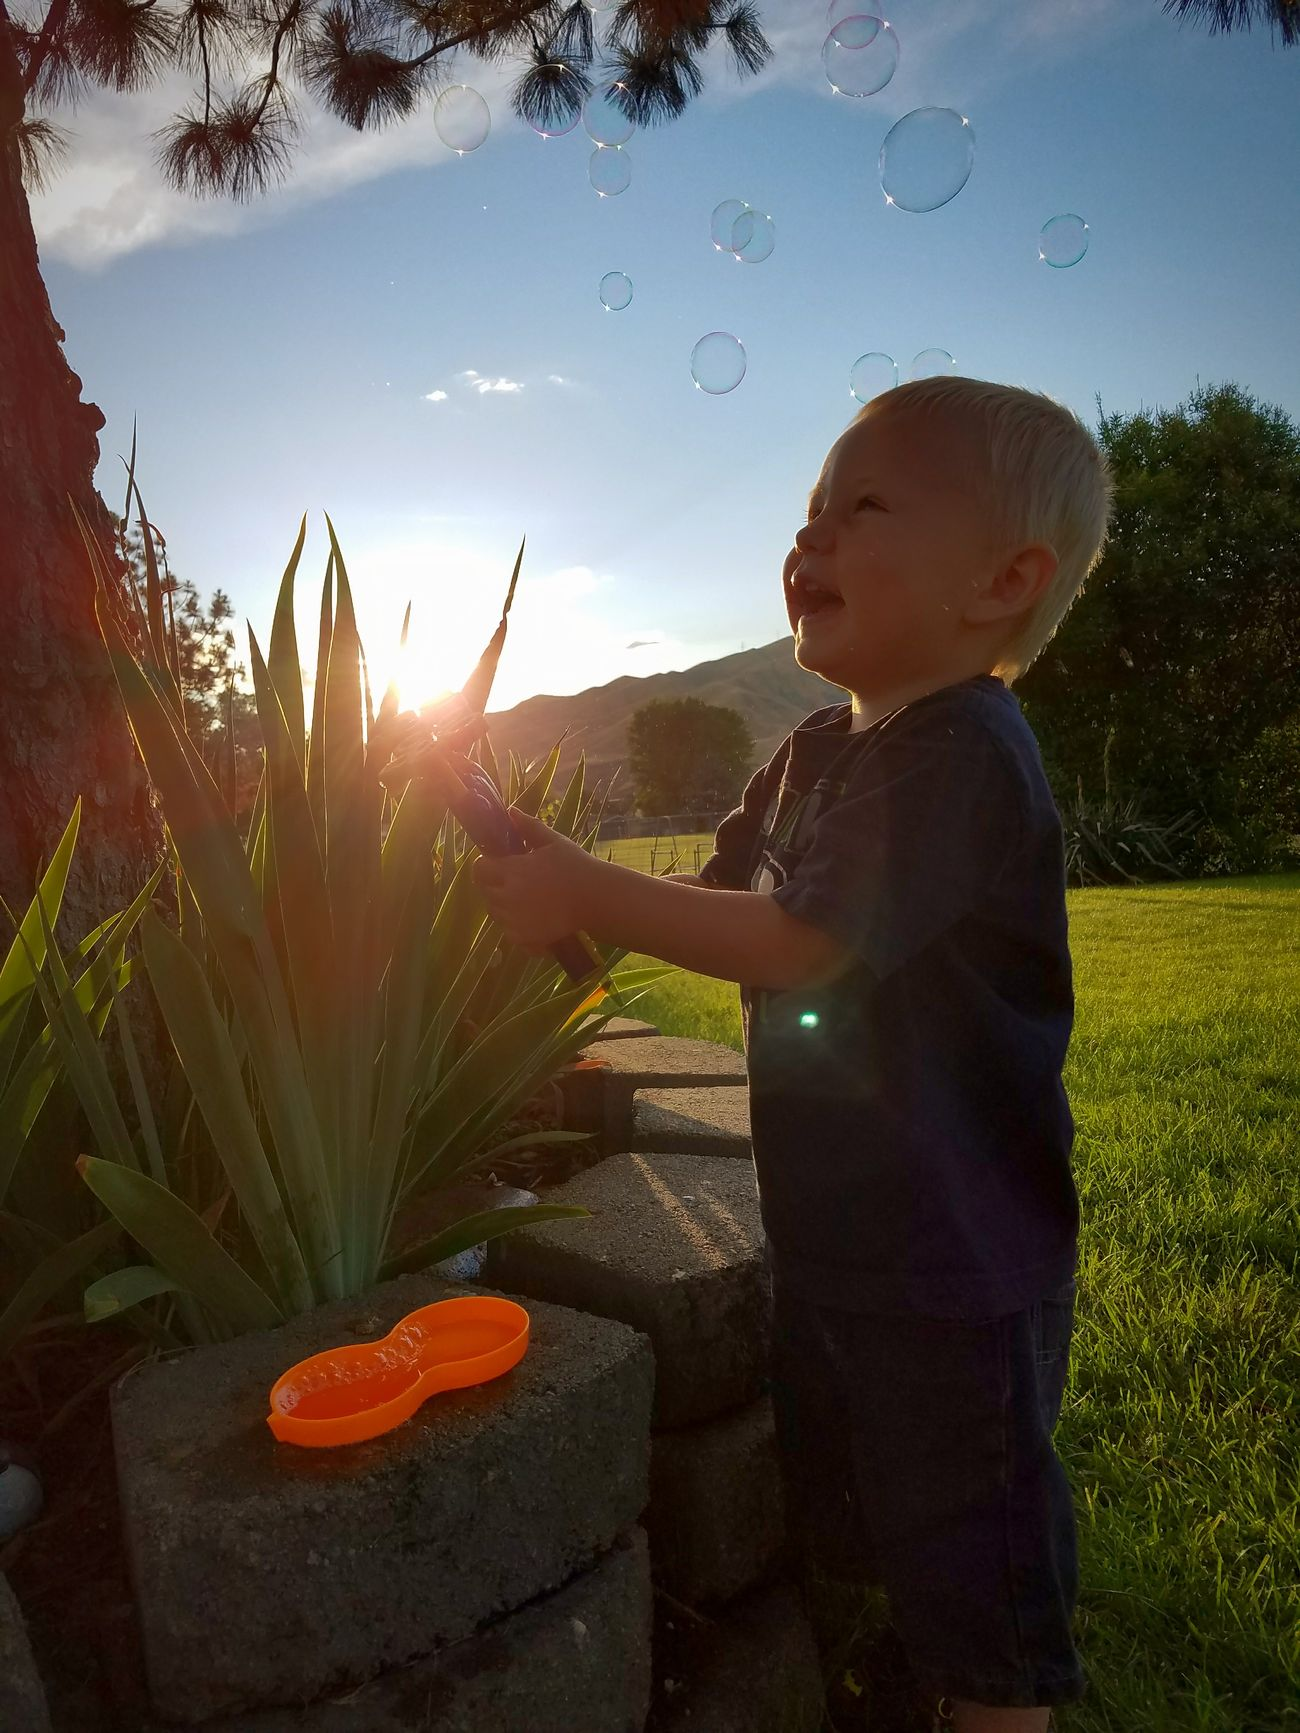 Childhood Outdoors Sky Nature Bubbles ♥ Summertime 🌞 Innocent Face Nephew Time  Simply Pleasures In Life To Be A Kid Again.. Sun Glare Cute Tree